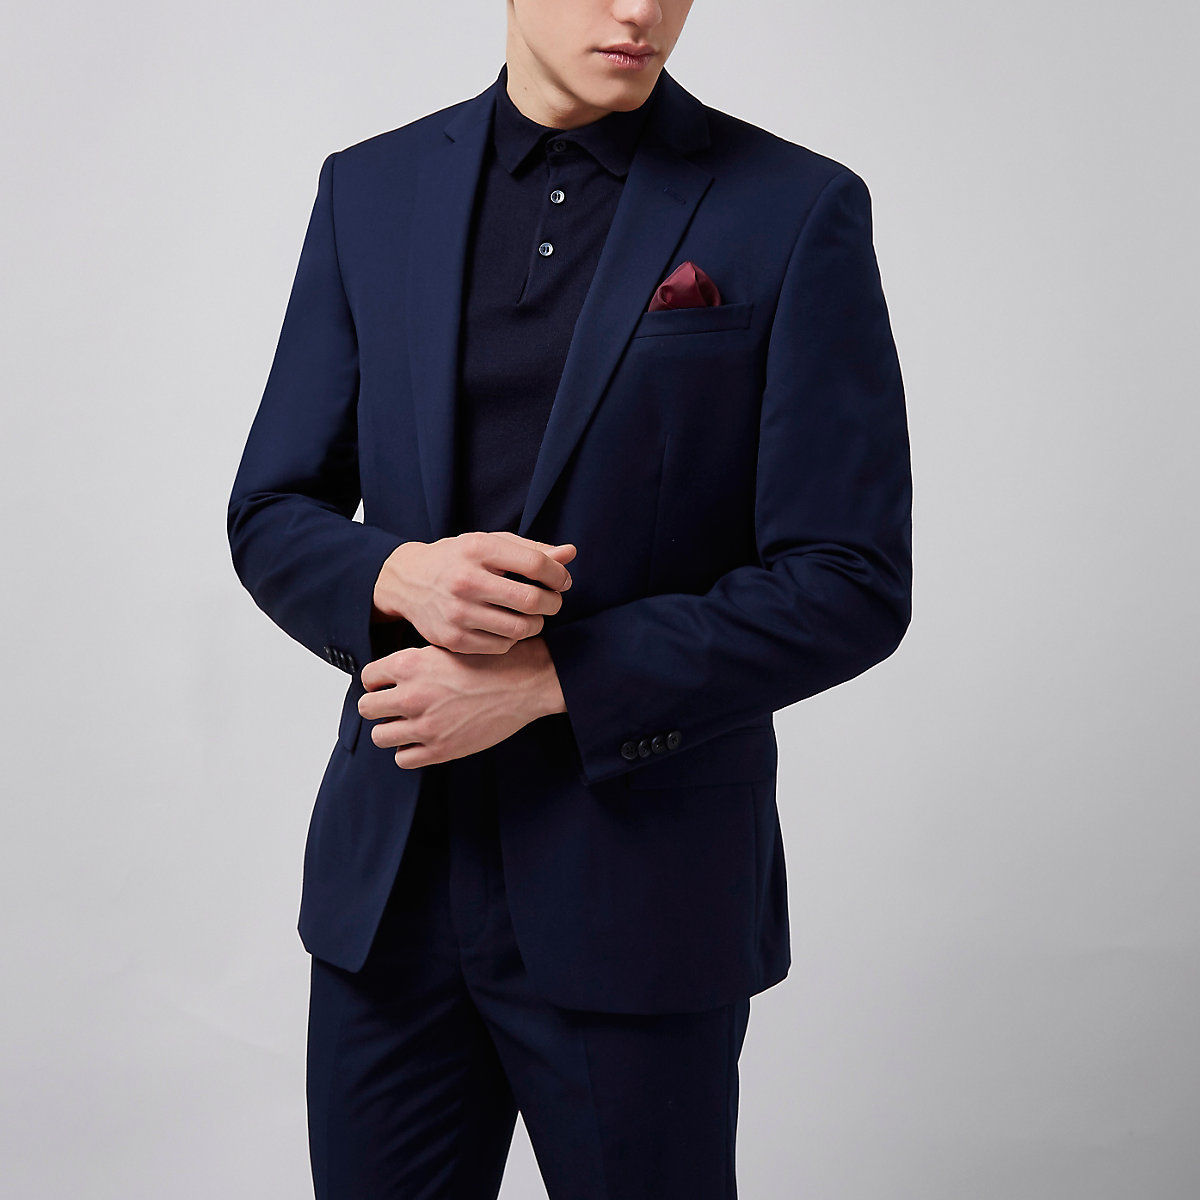 Navy tailored suit jacket